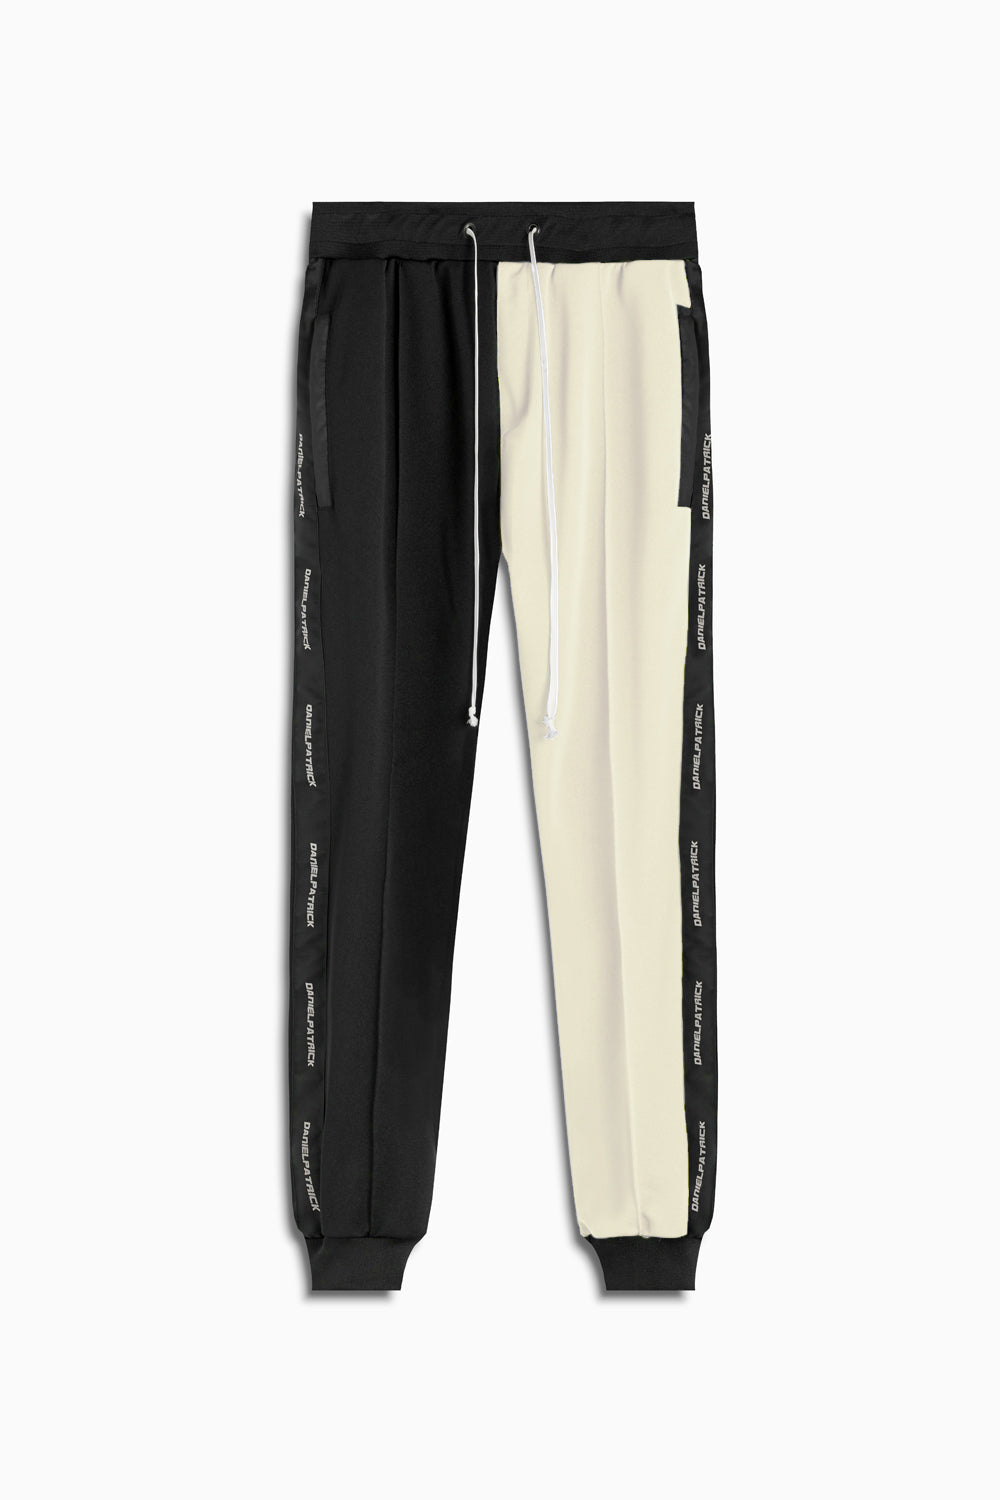 50/50 track pant in black/ivory by daniel patrick